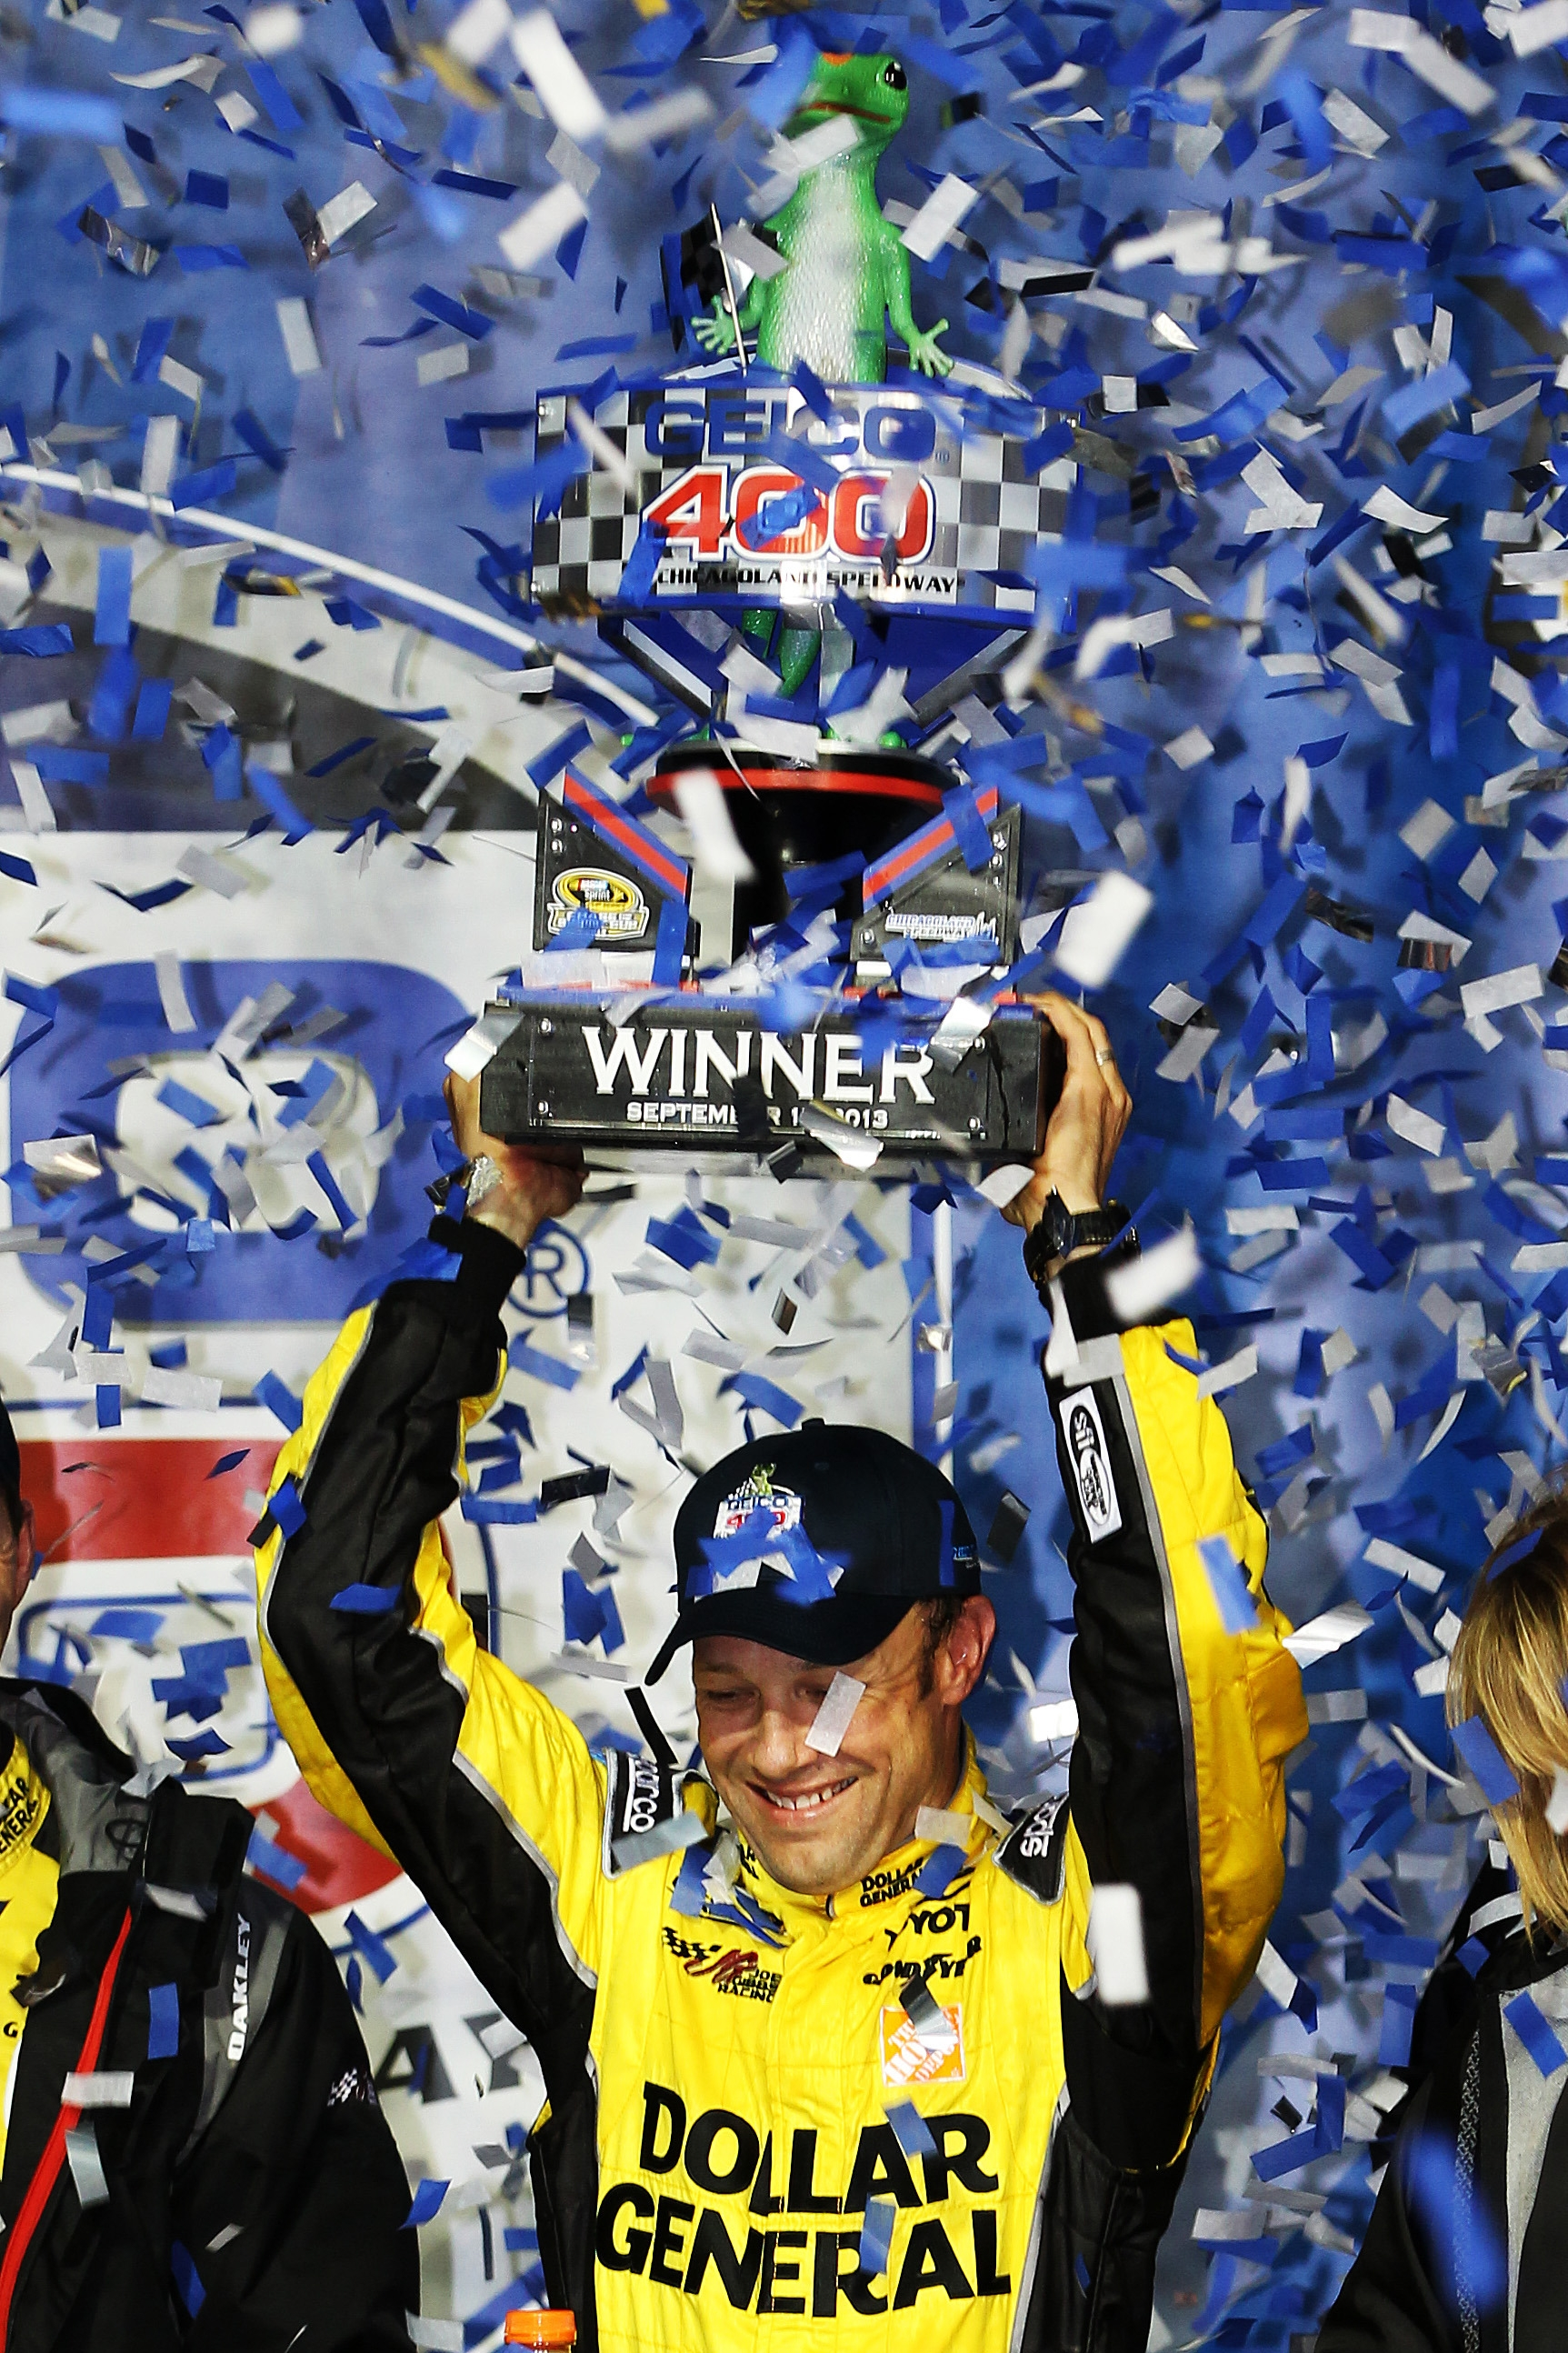 Matt Kenseth won last week's Chase opener and has an eight-point lead over Kyle Busch for the Sprint Cup title.